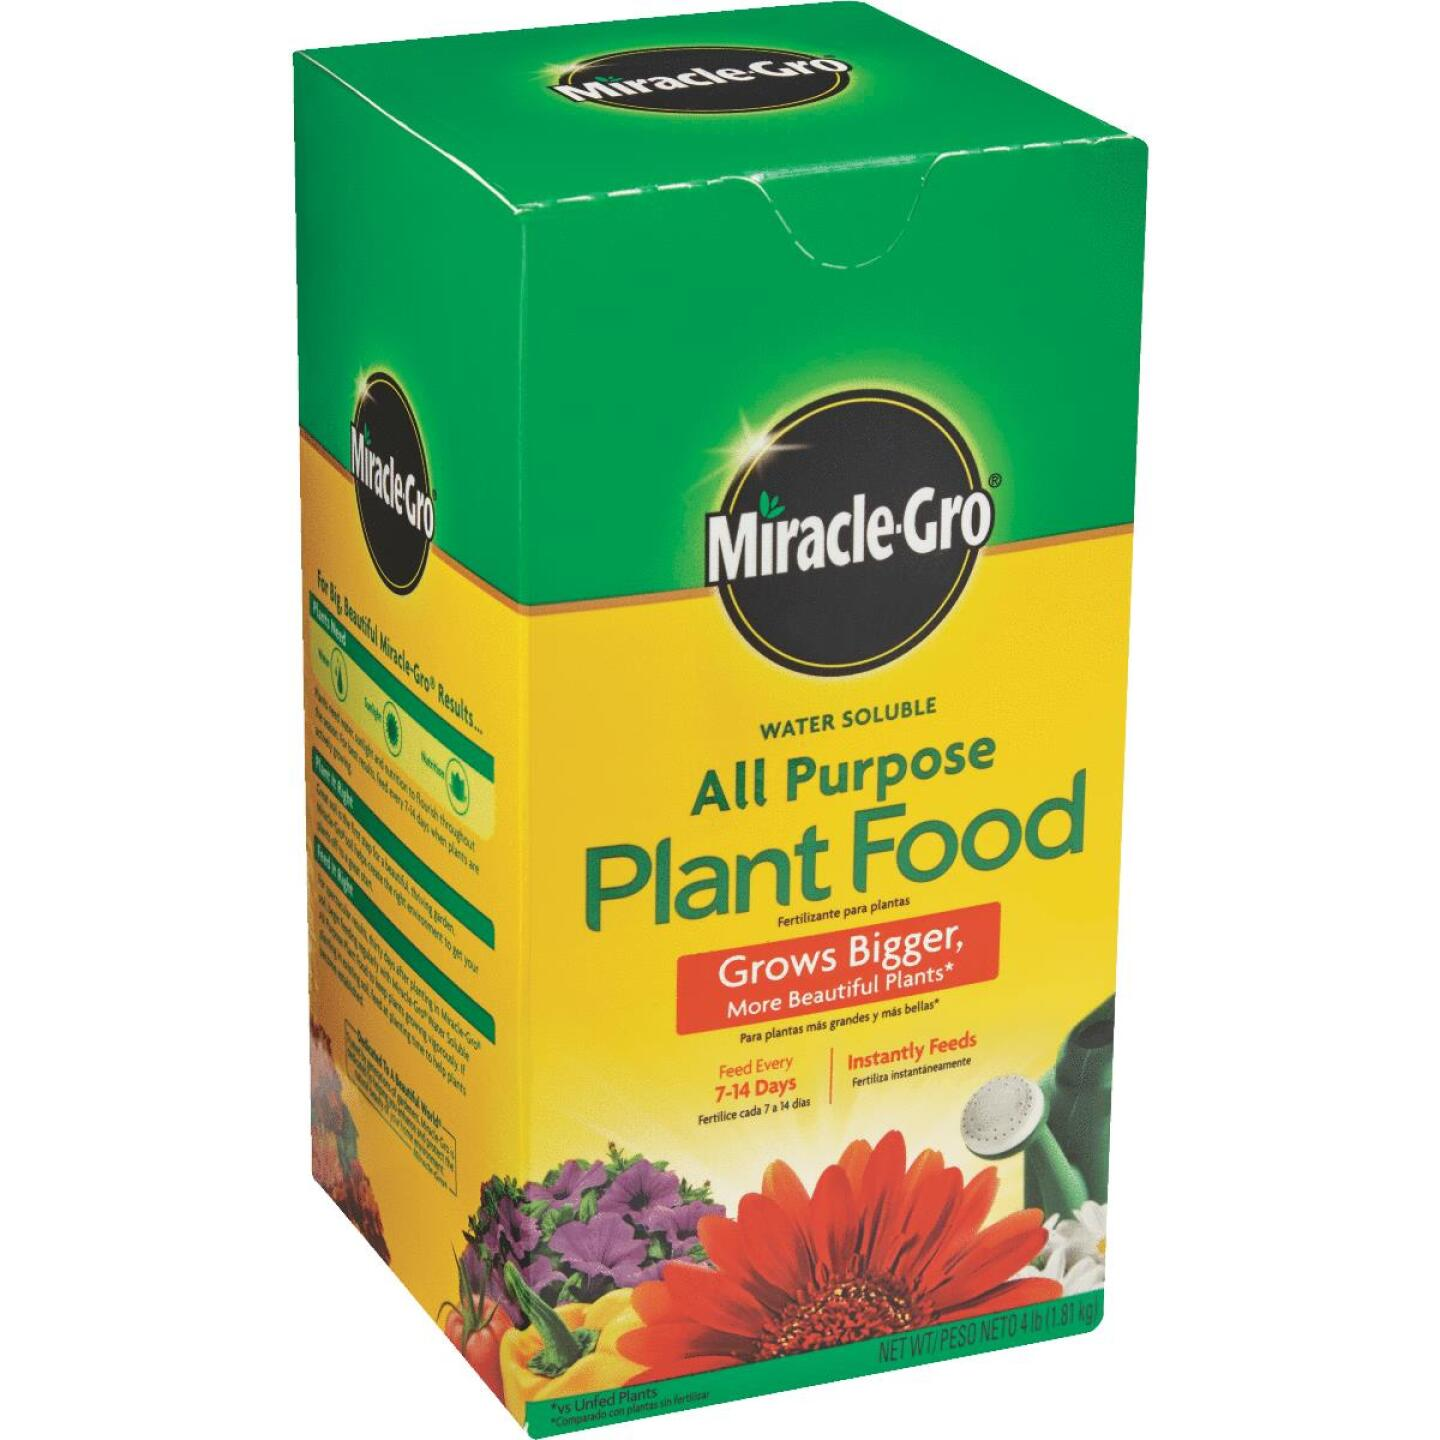 Miracle-Gro 4 Lb. 24-8-16 All Purpose Dry Plant Food Image 2